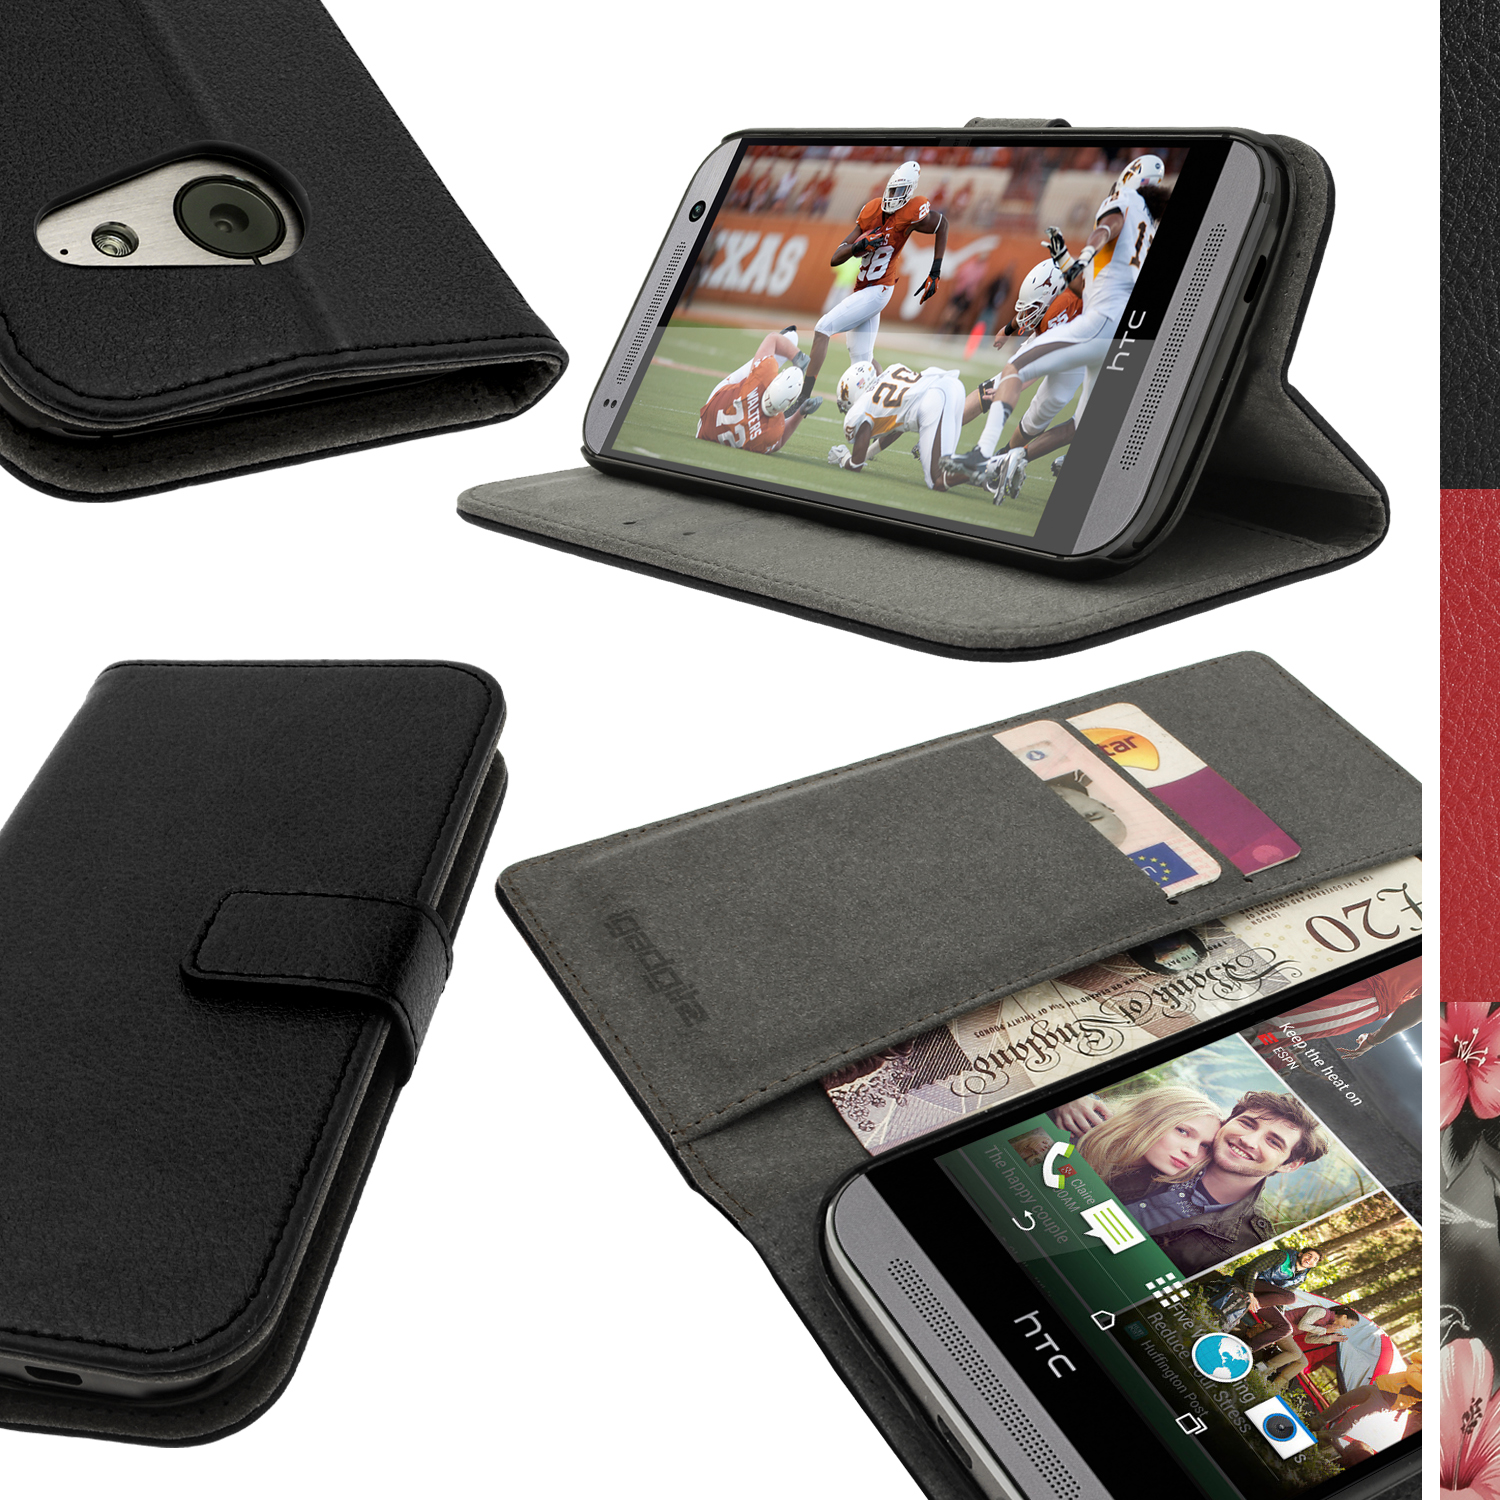 iGadgitz Black PU Leather Wallet Case for HTC One MINI 2 2014 with Card Slots, Stand, Hand Strap + Screen Protector